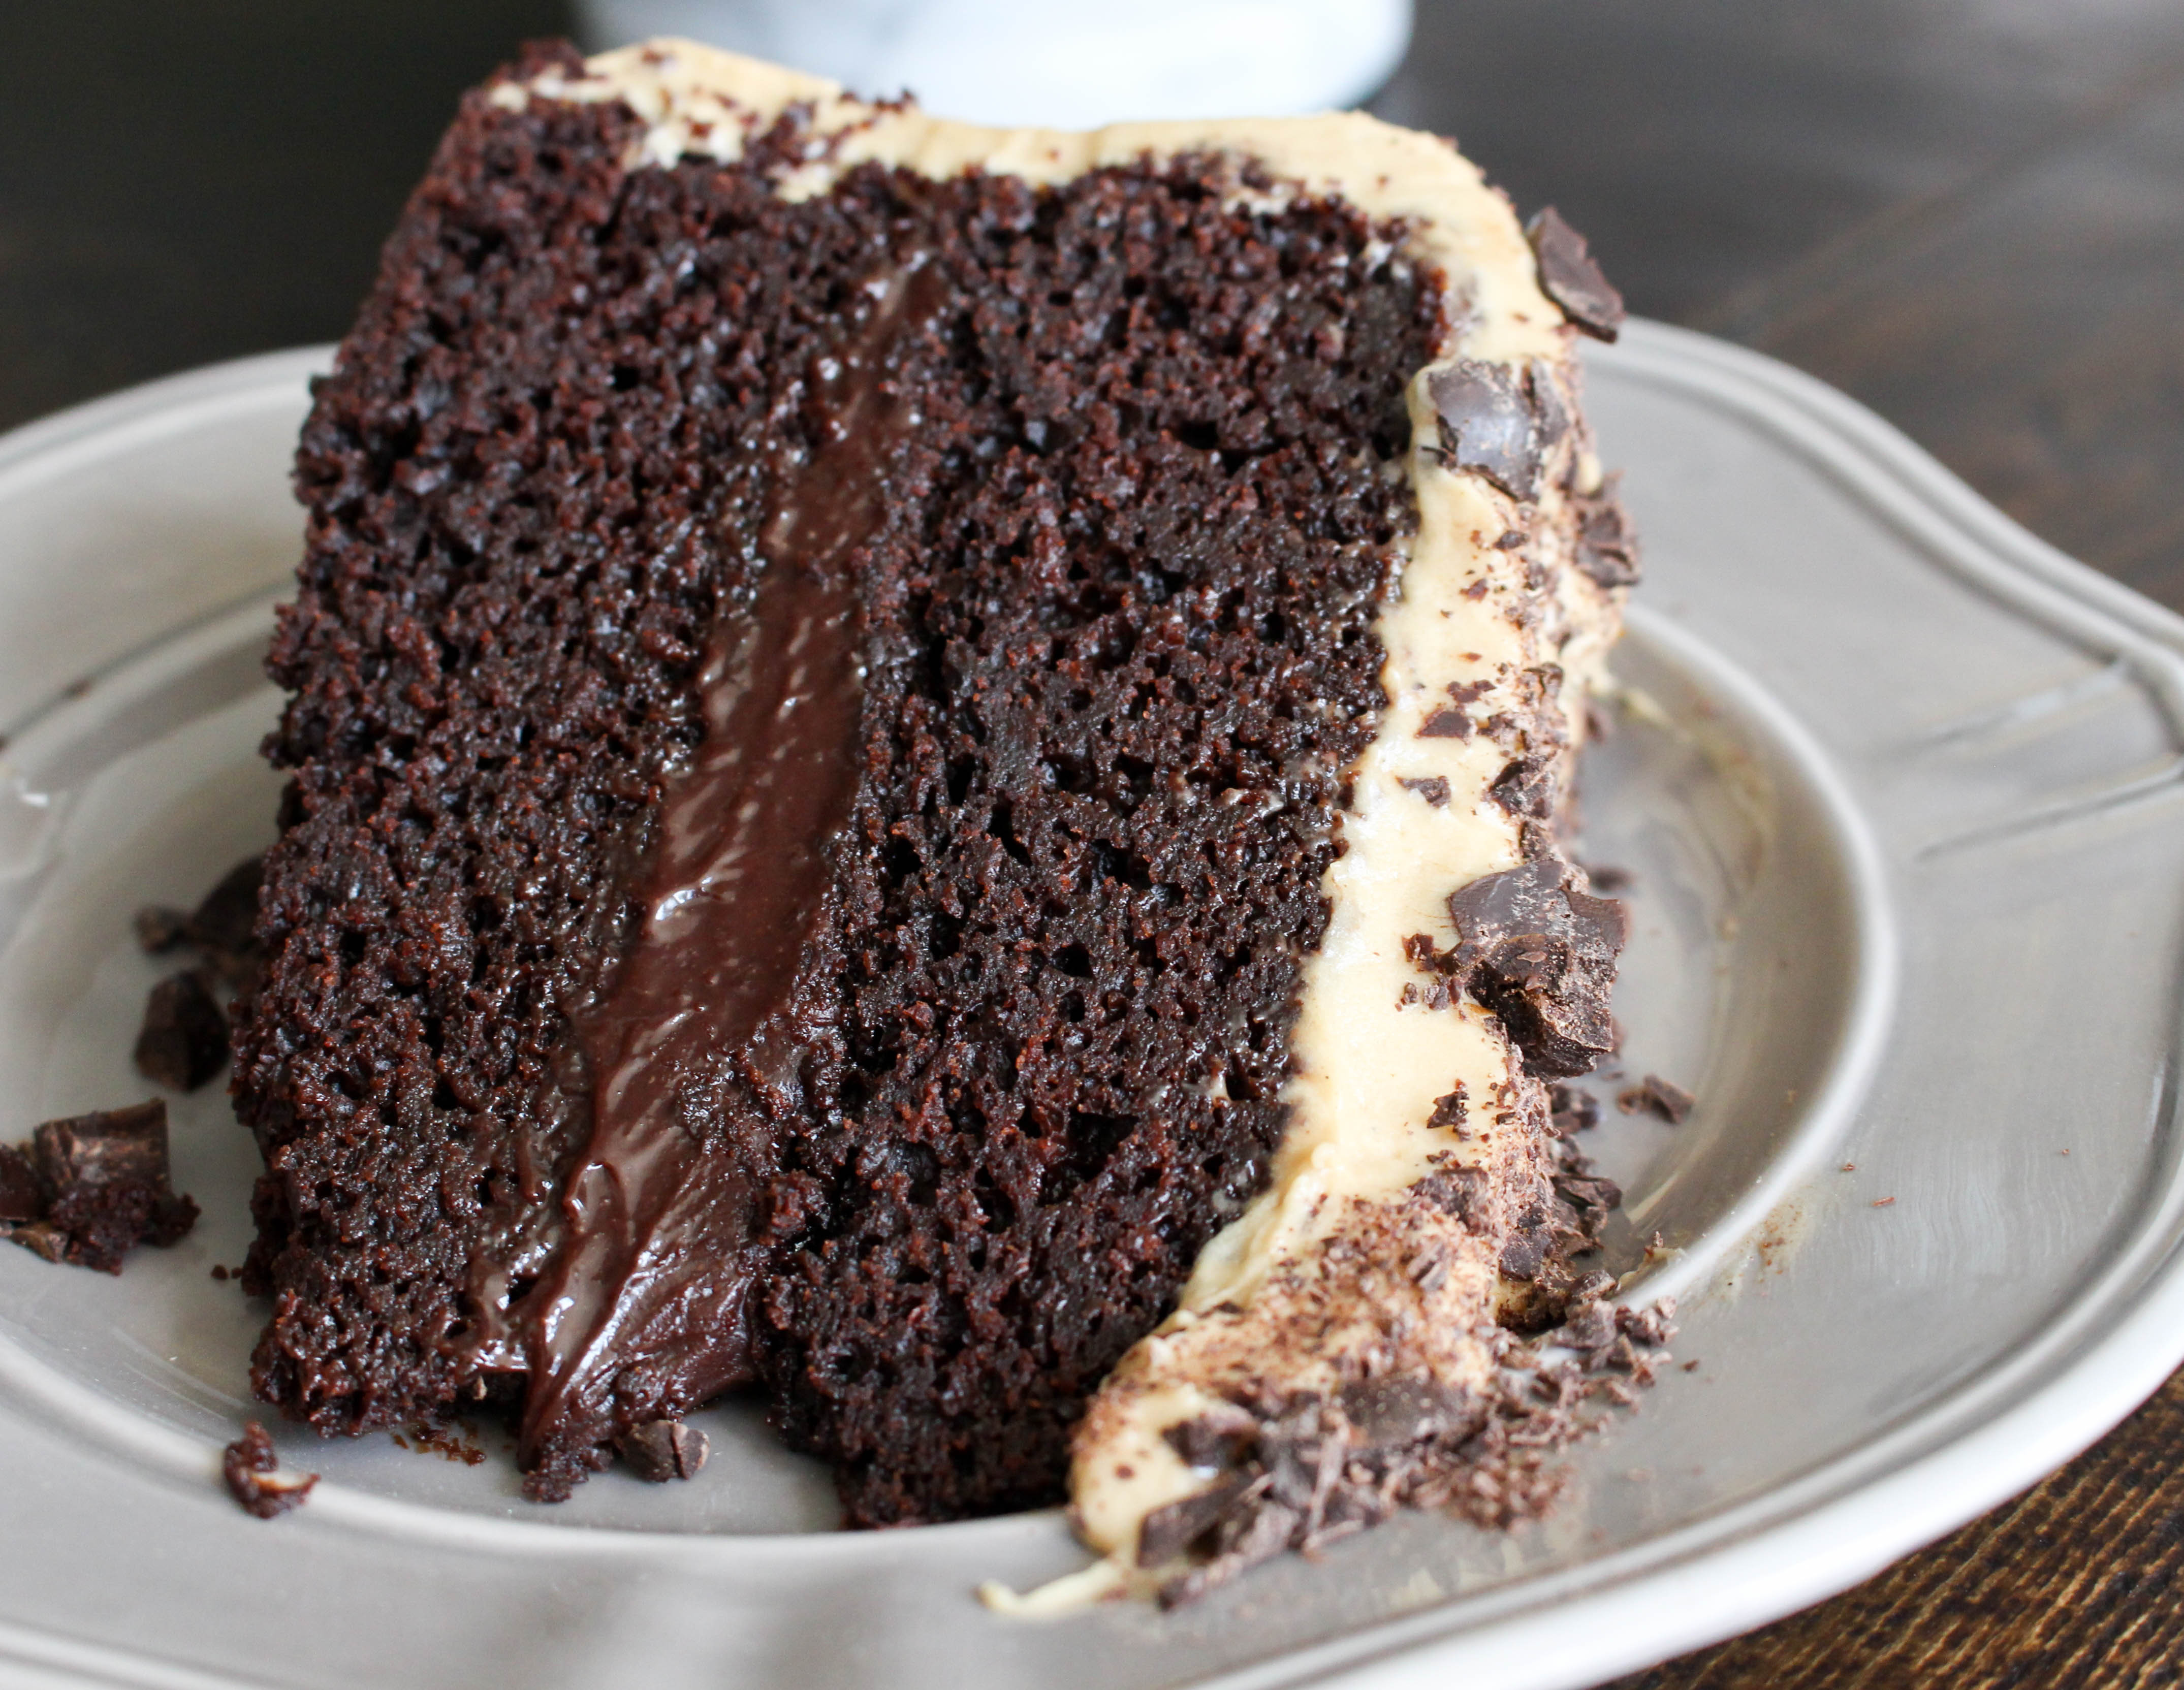 Chocolate Cake Filling  e Year Mocha Cake with Fudge Filling & Espresso Frosting